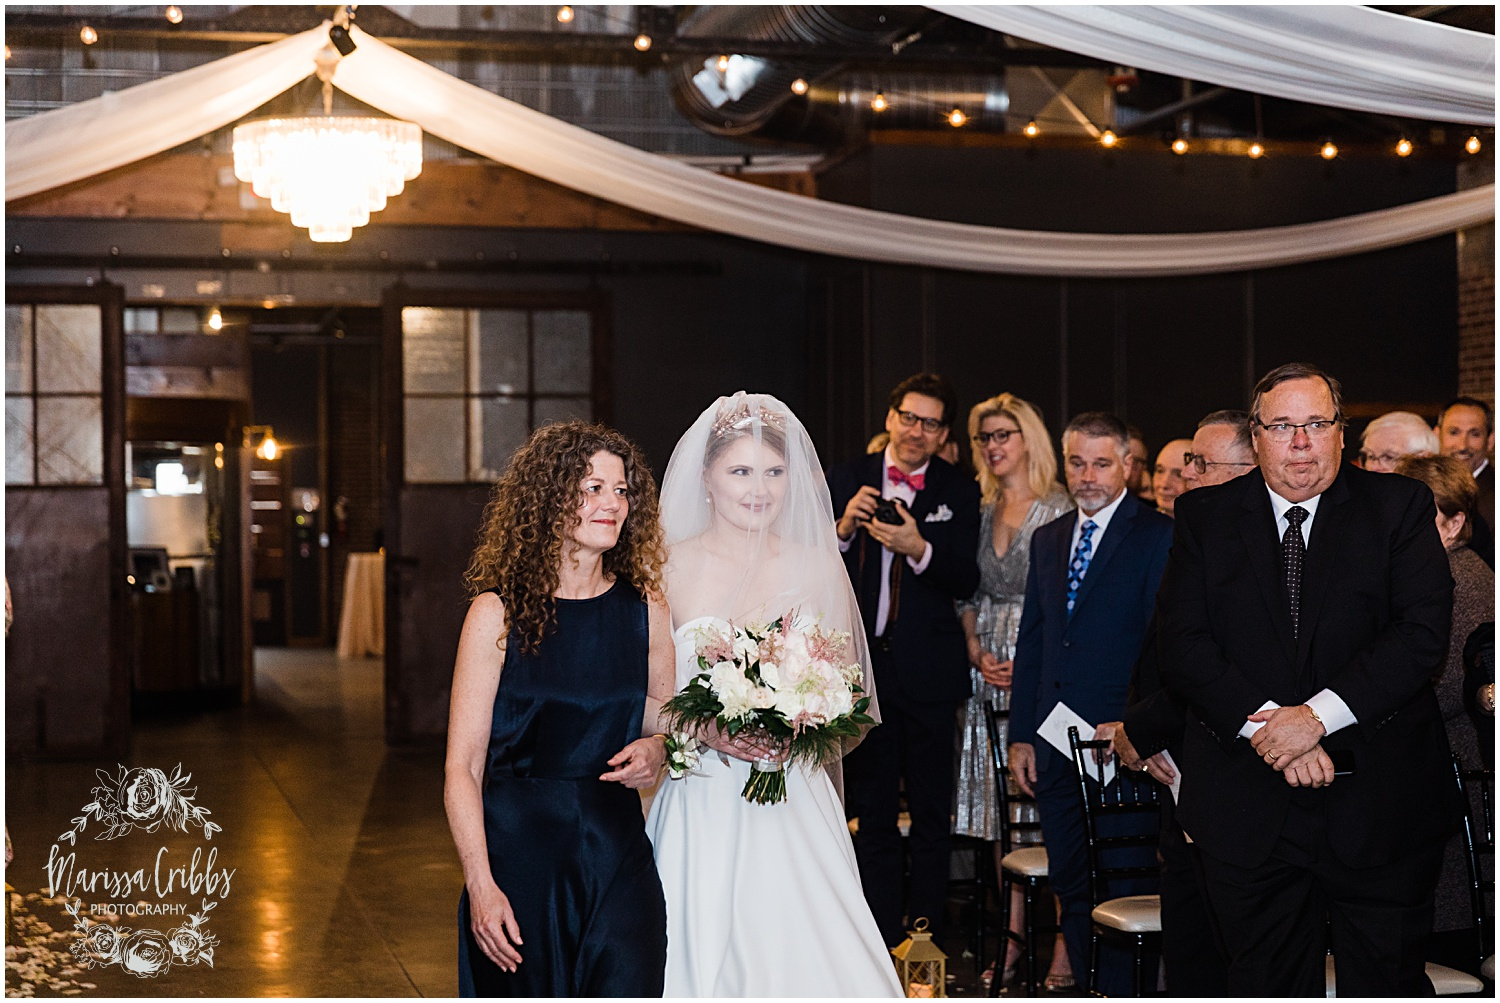 ABBY & CHARLIE WEDDING | THE HUDSON EVENT SPACE WEDDING | MARISSA CRIBBS PHOTOGRAPHY_7550.jpg